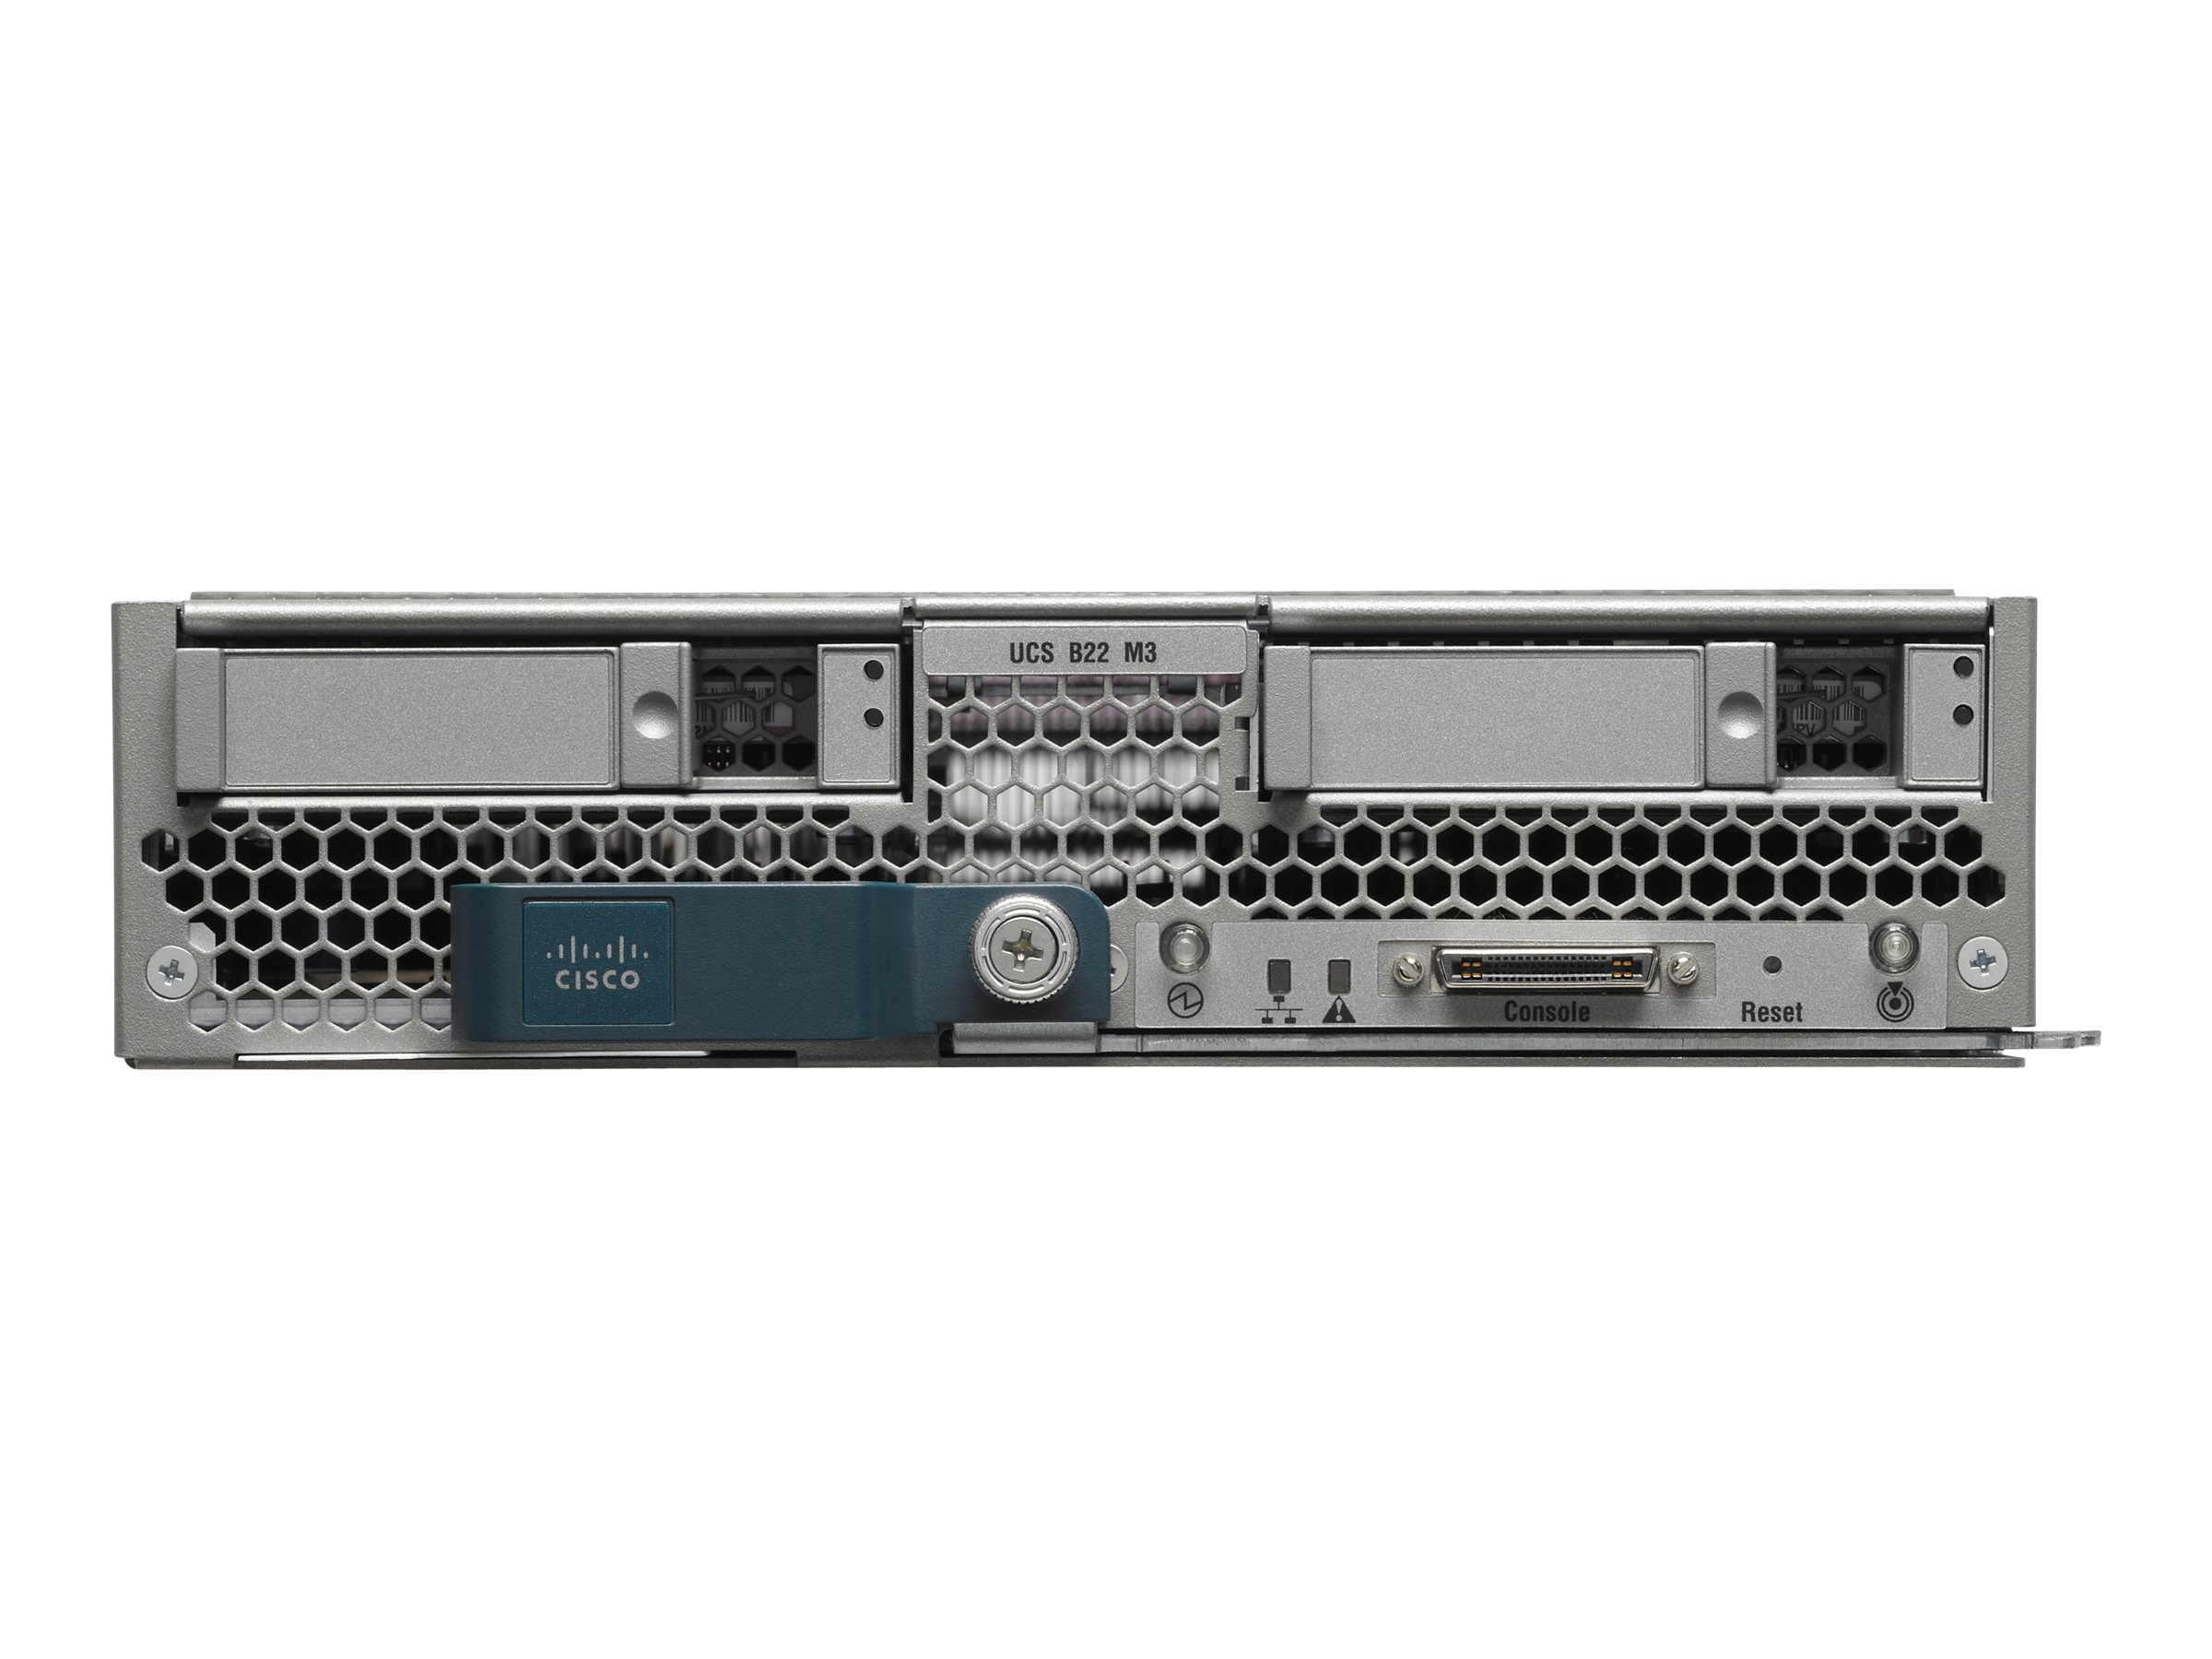 Cisco UCS B200 M3 Entry Plus SmartPlay Expansion Pack (2x) Xeon 6C E5-2620 v2 2.1GHz 64GB 2x2.5 Bays